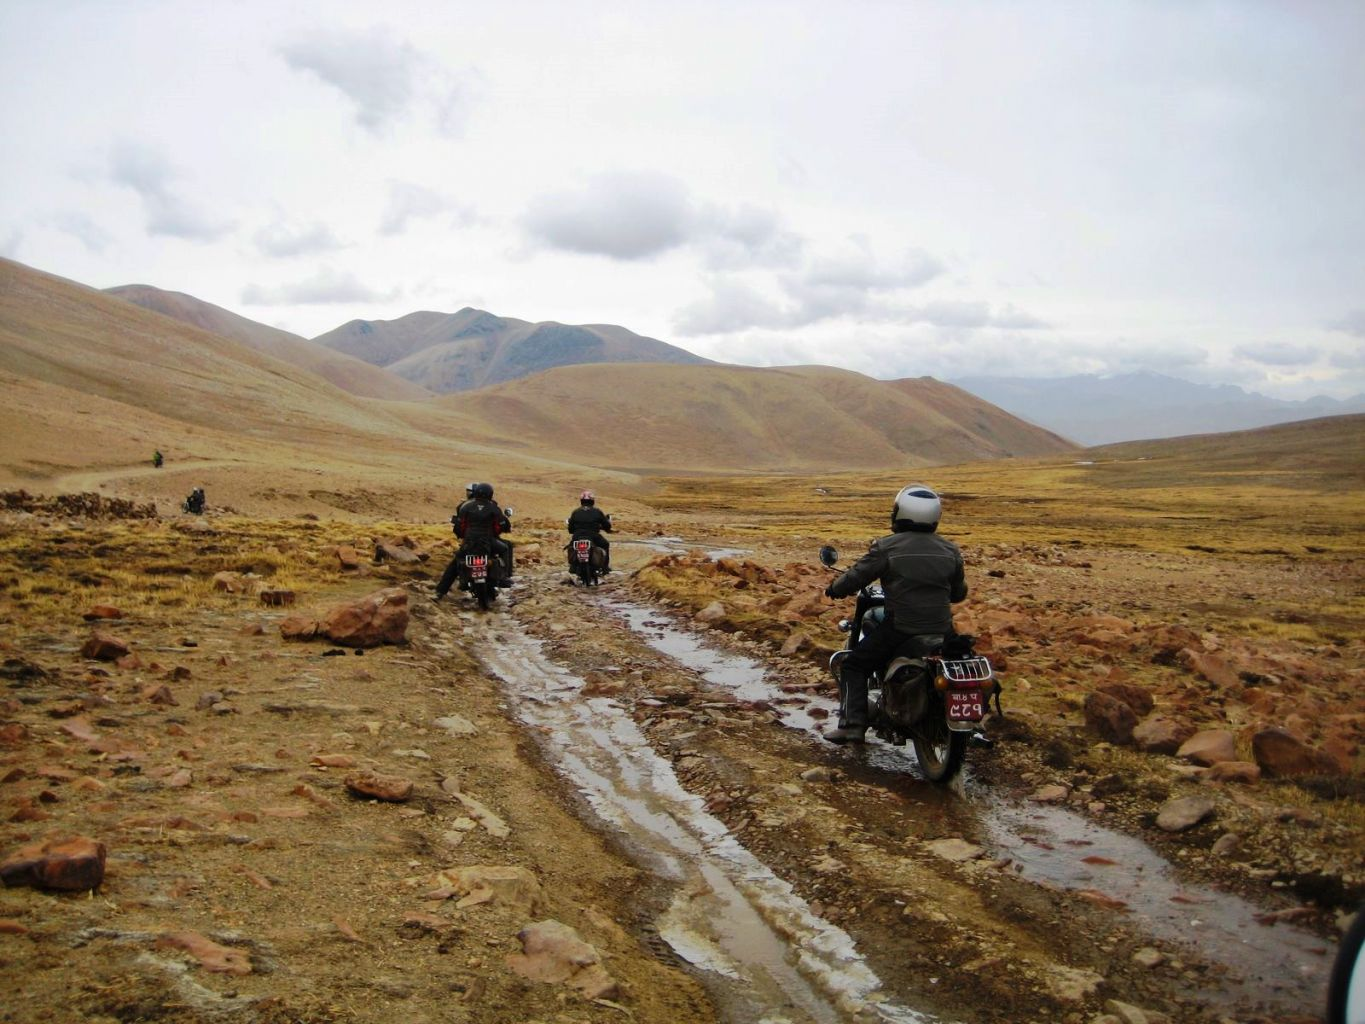 Mt. Everest on motorcycles